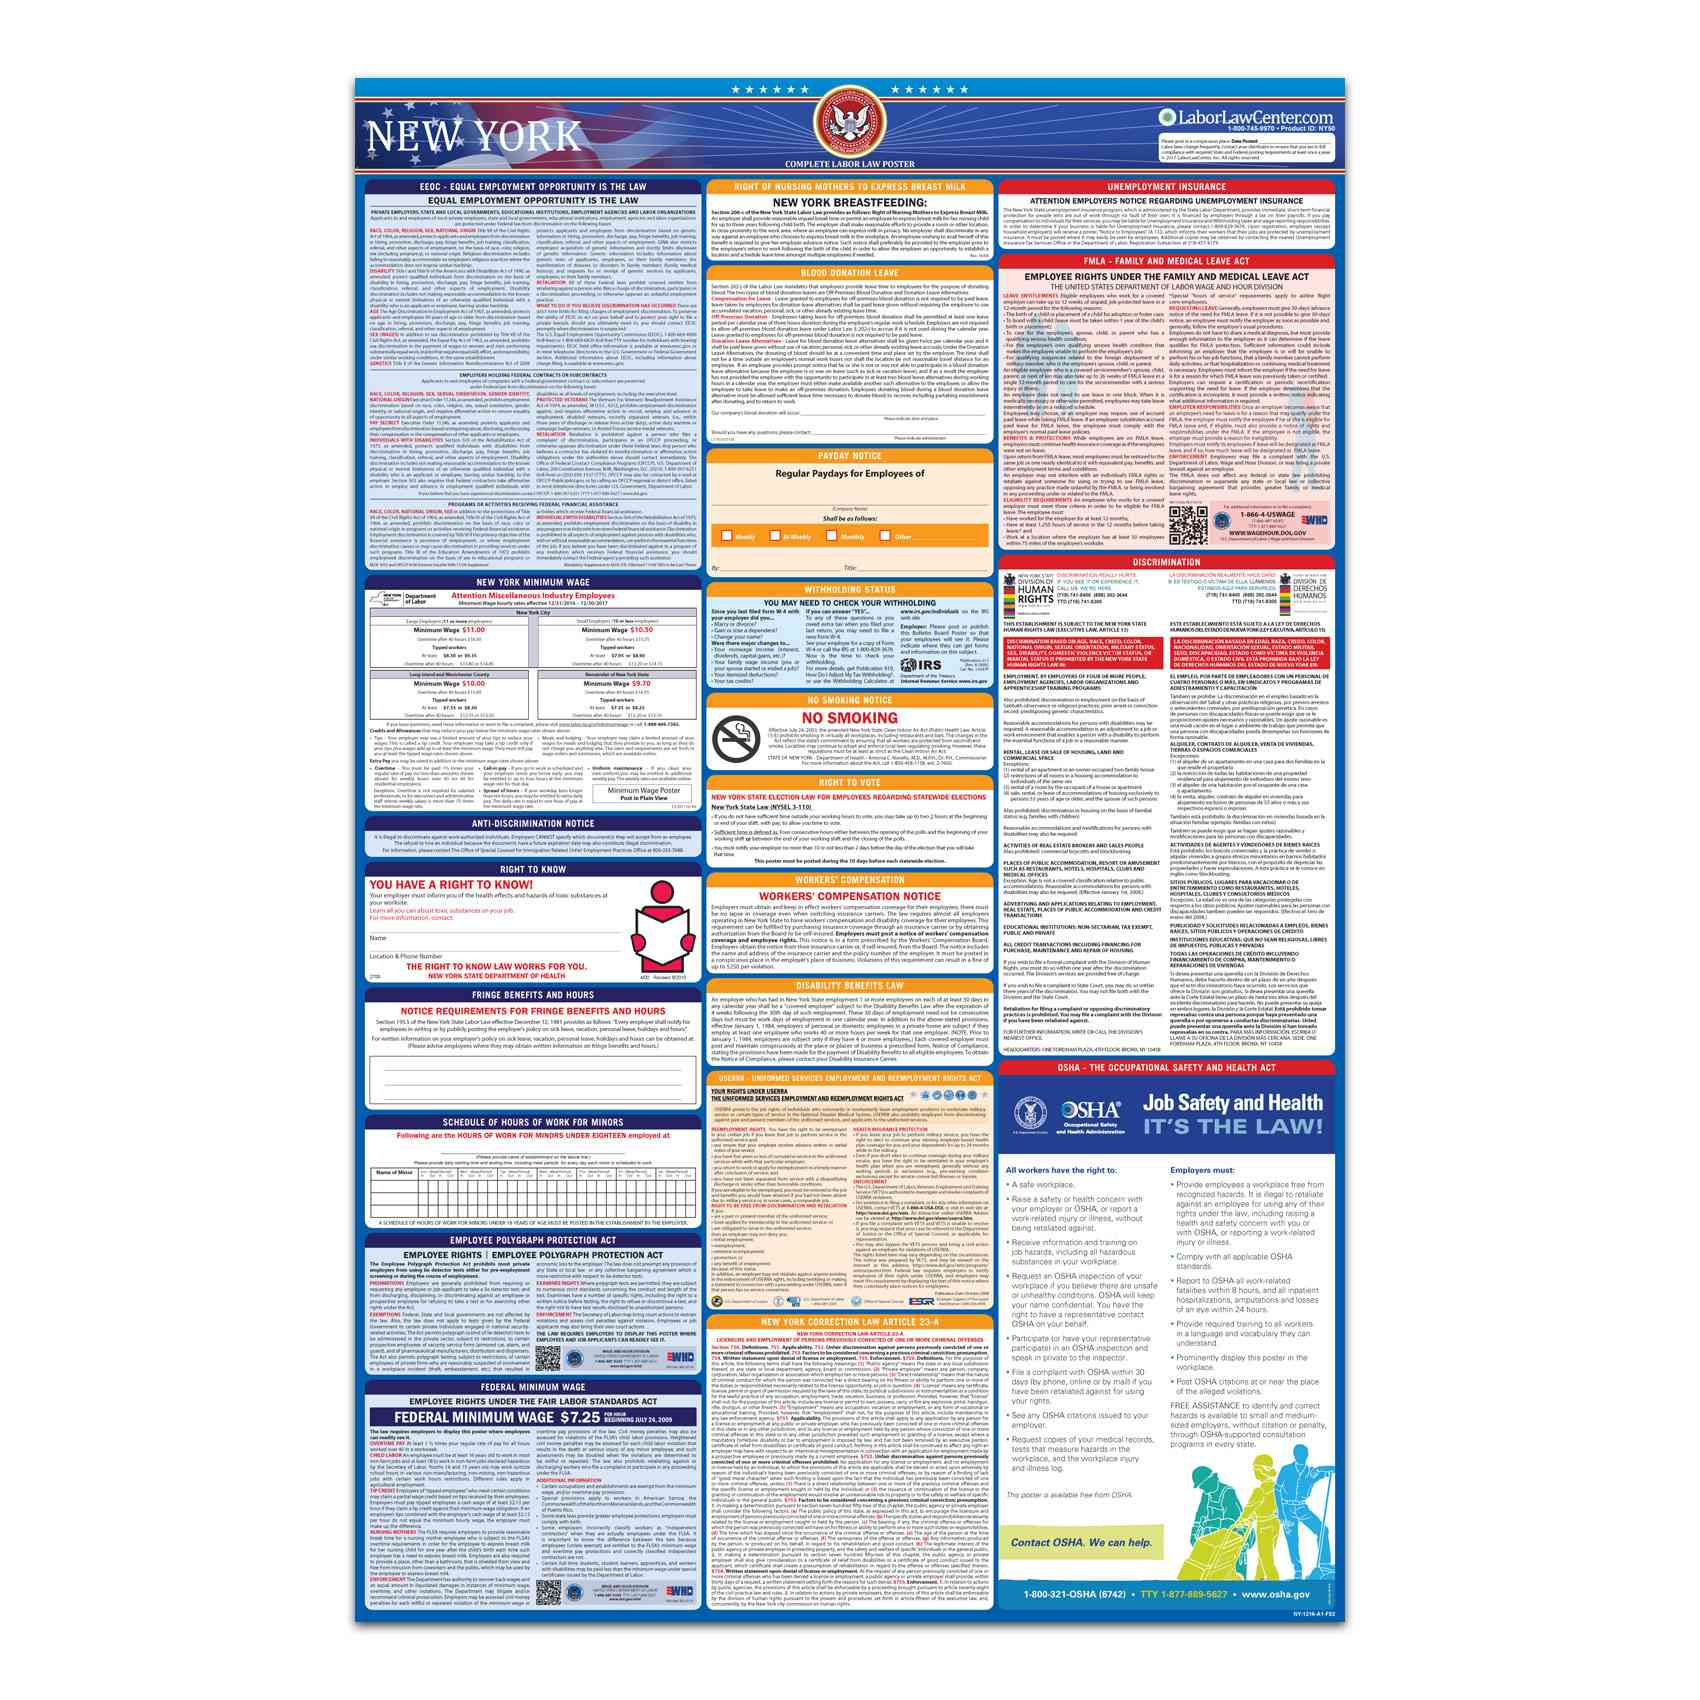 new york federal labor law poster 2021 replacement service